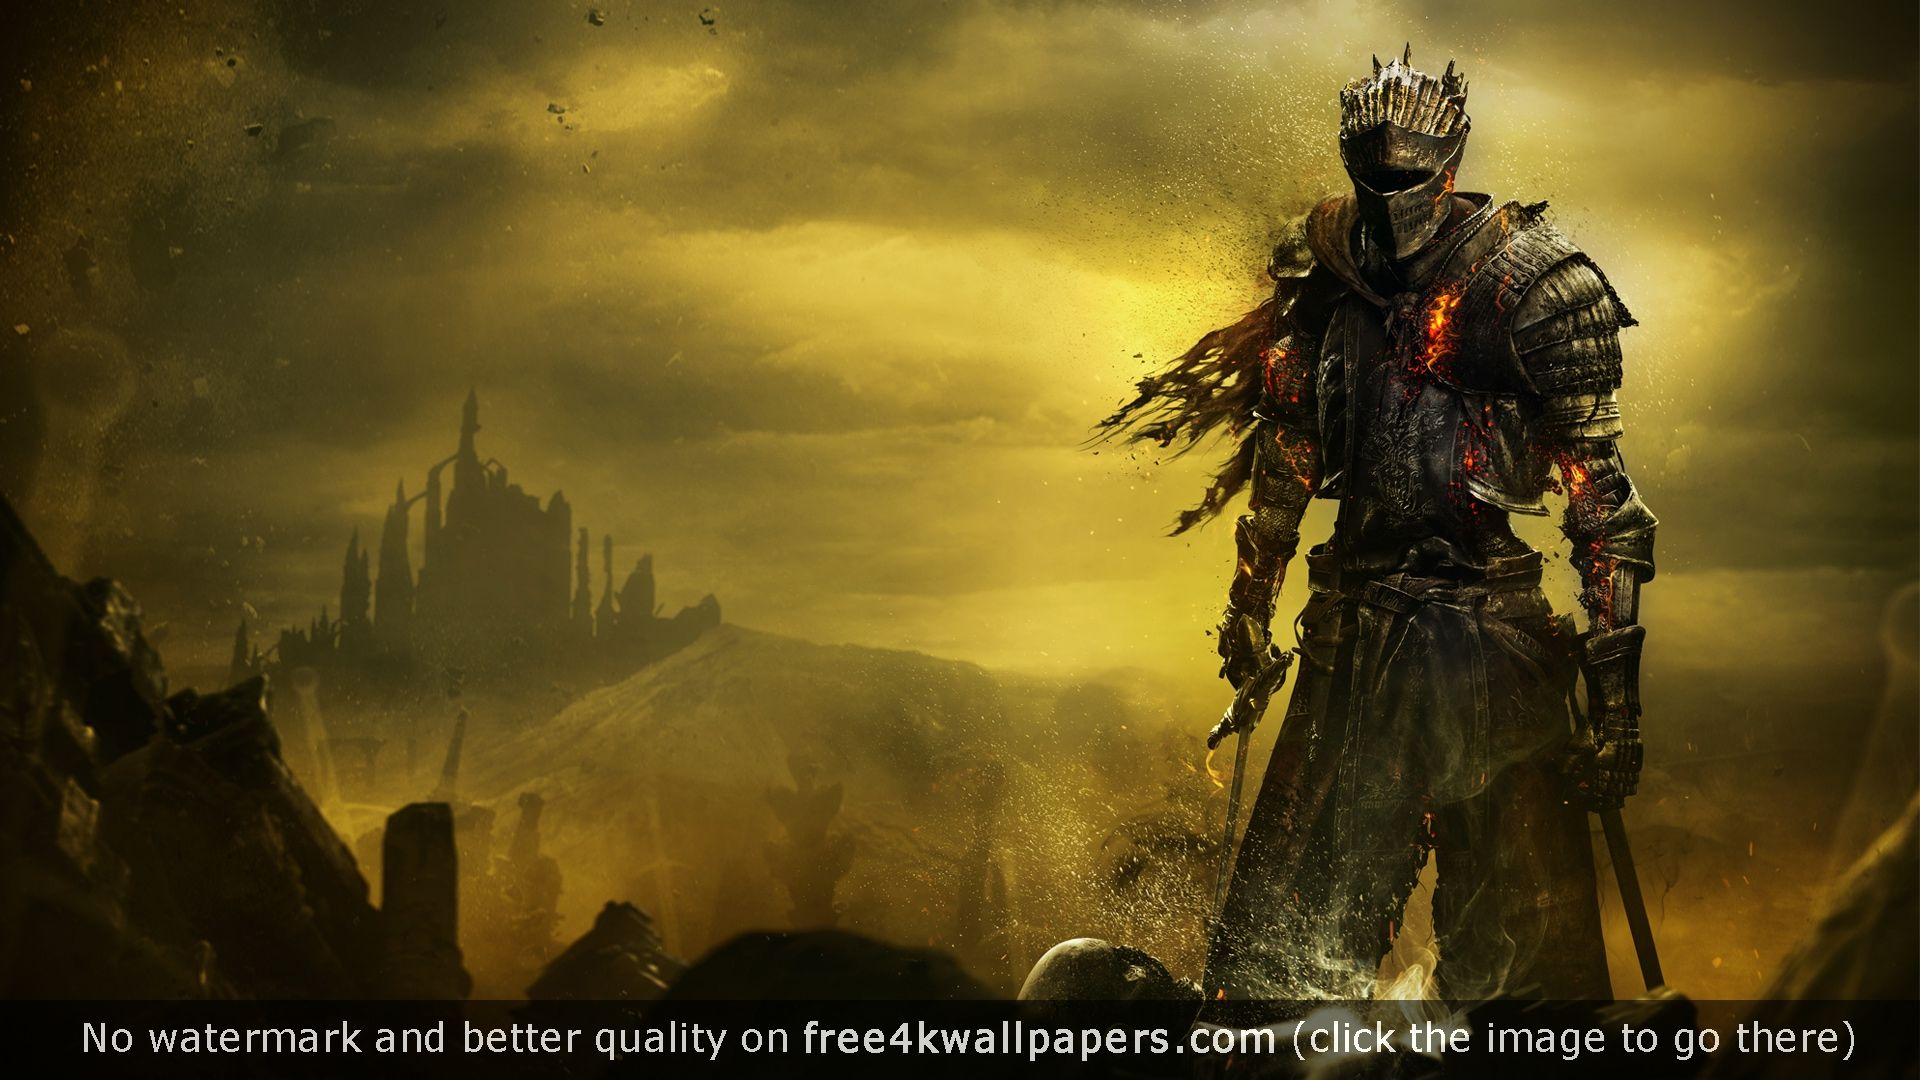 Soul Of Cinder Dark Souls 3 Hd Wallpaper Dark Souls Dark Souls 3 Dark Souls Wallpaper